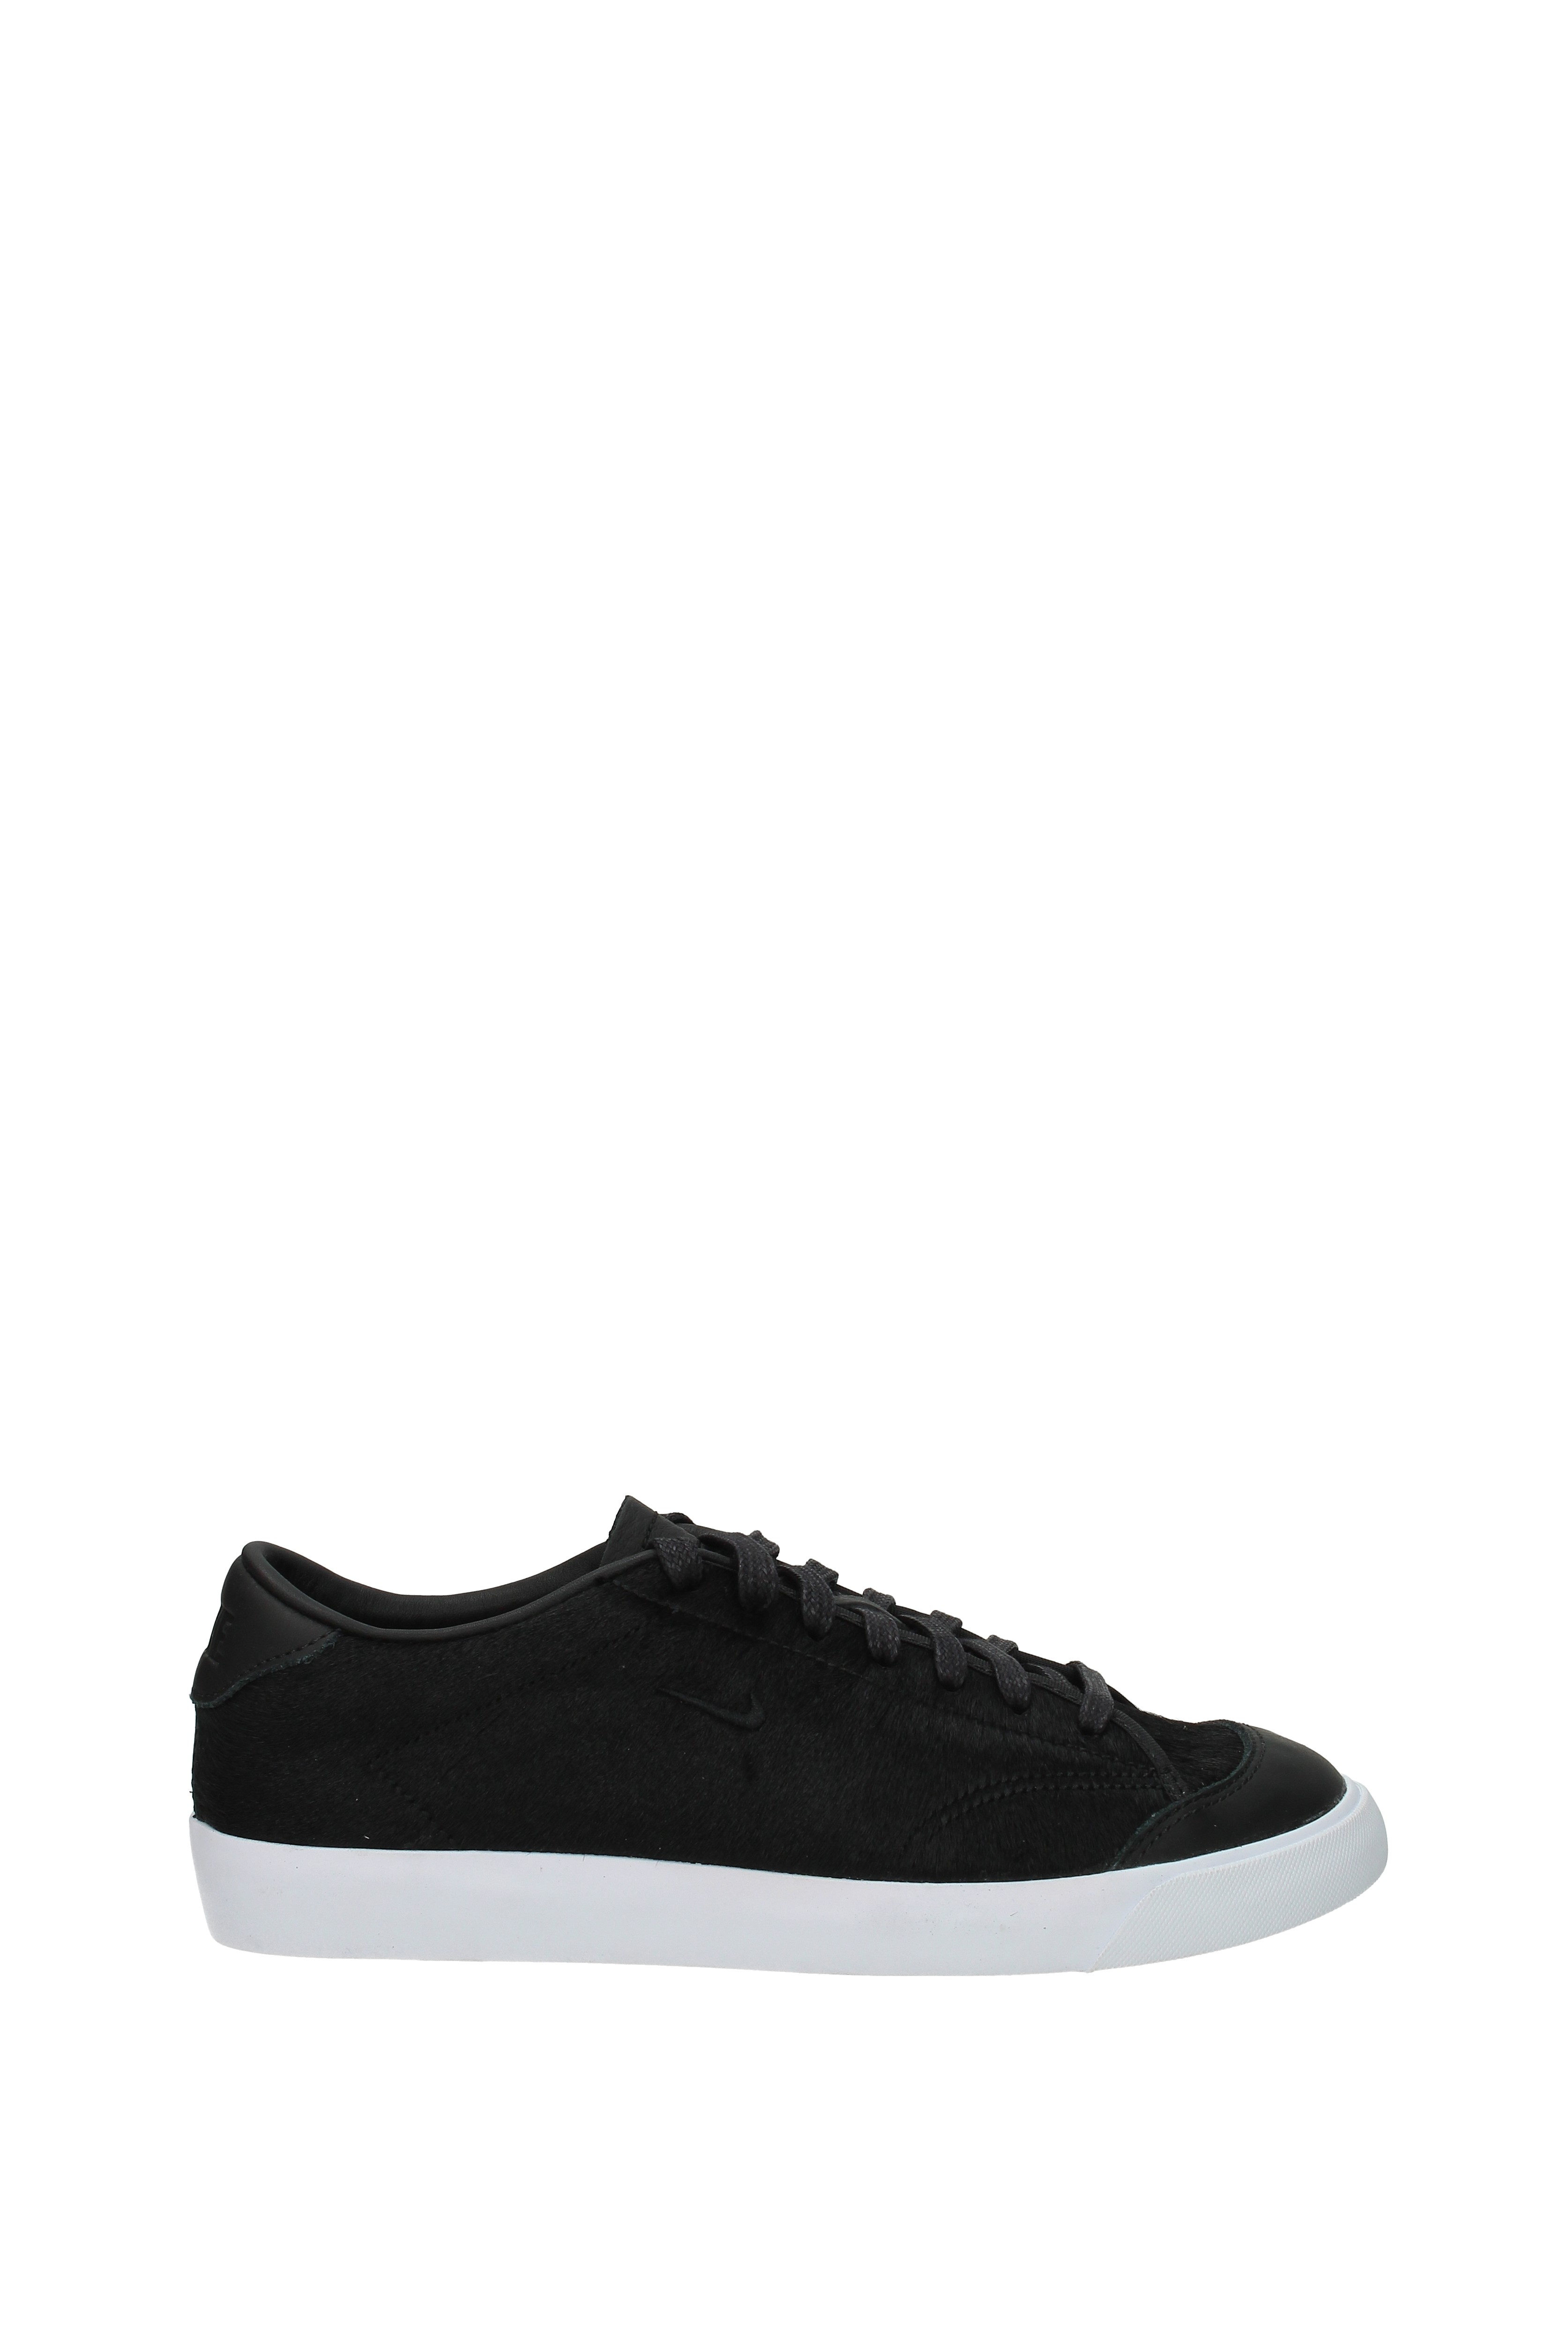 Sneakers Nike - all court 2 low lx Herren - Nike Ponyfell (875789) bdab79